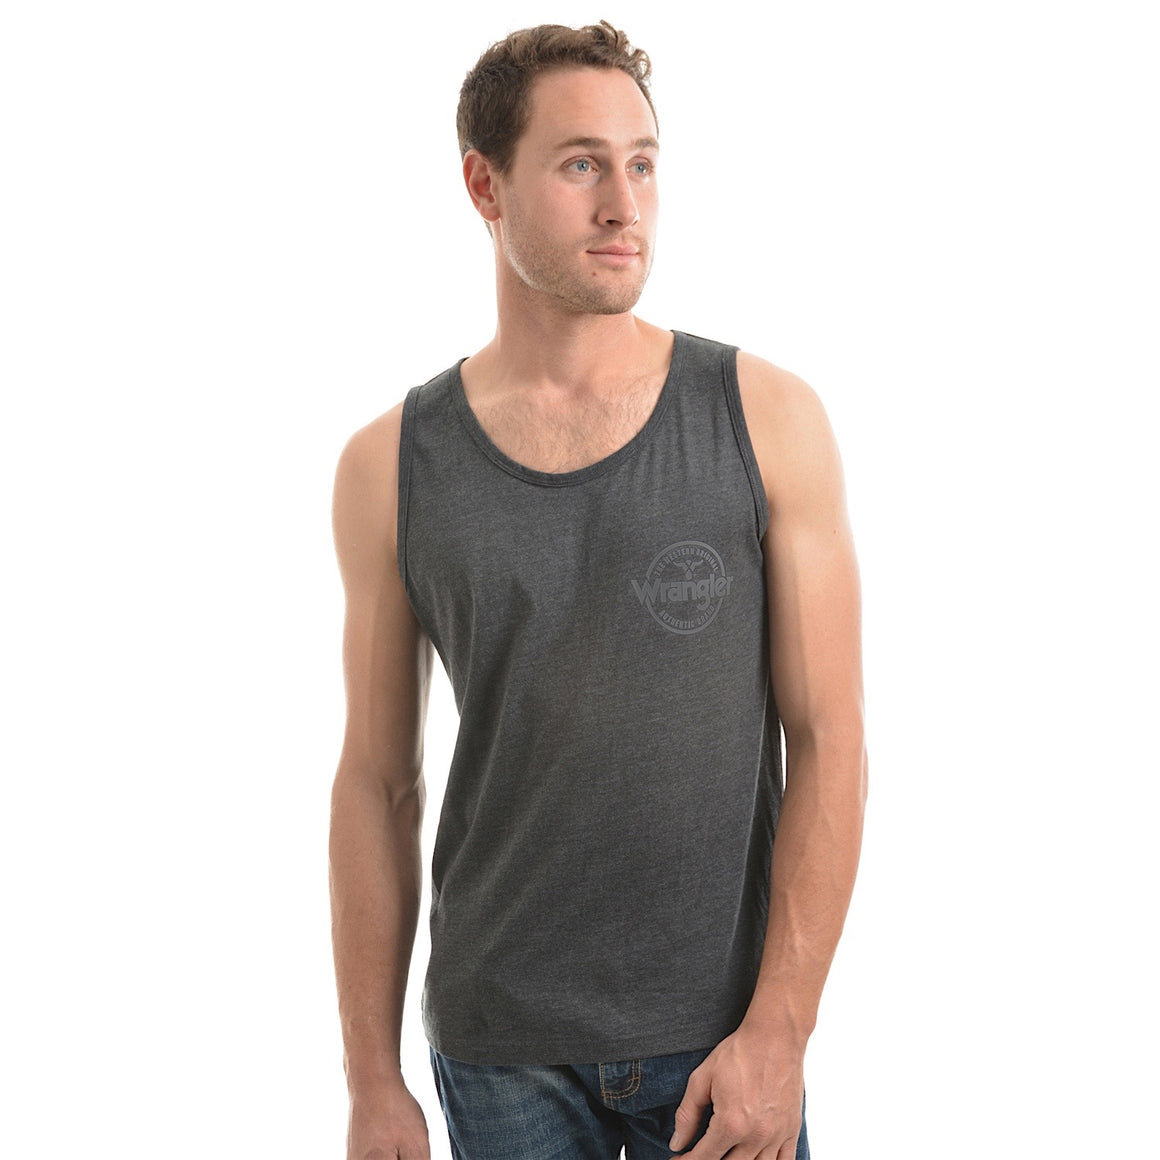 Wrangler Mens Marcus Singlet Charcoal Marle